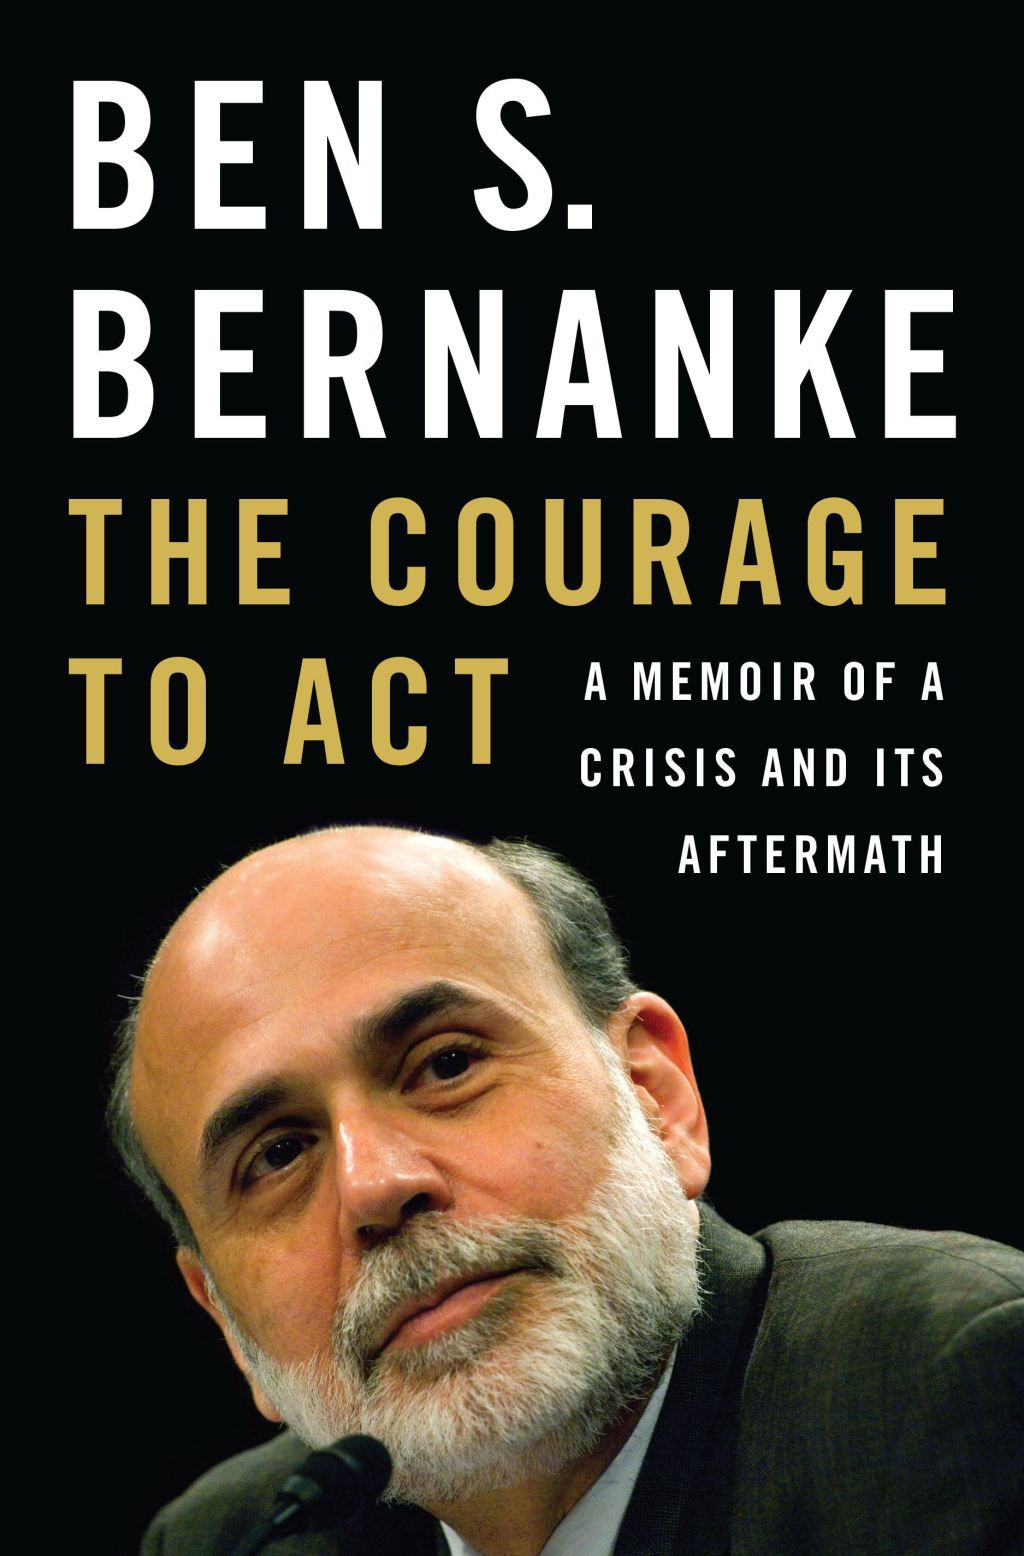 Ben Bernanke on bubbles, bitcoin, and why he's not a